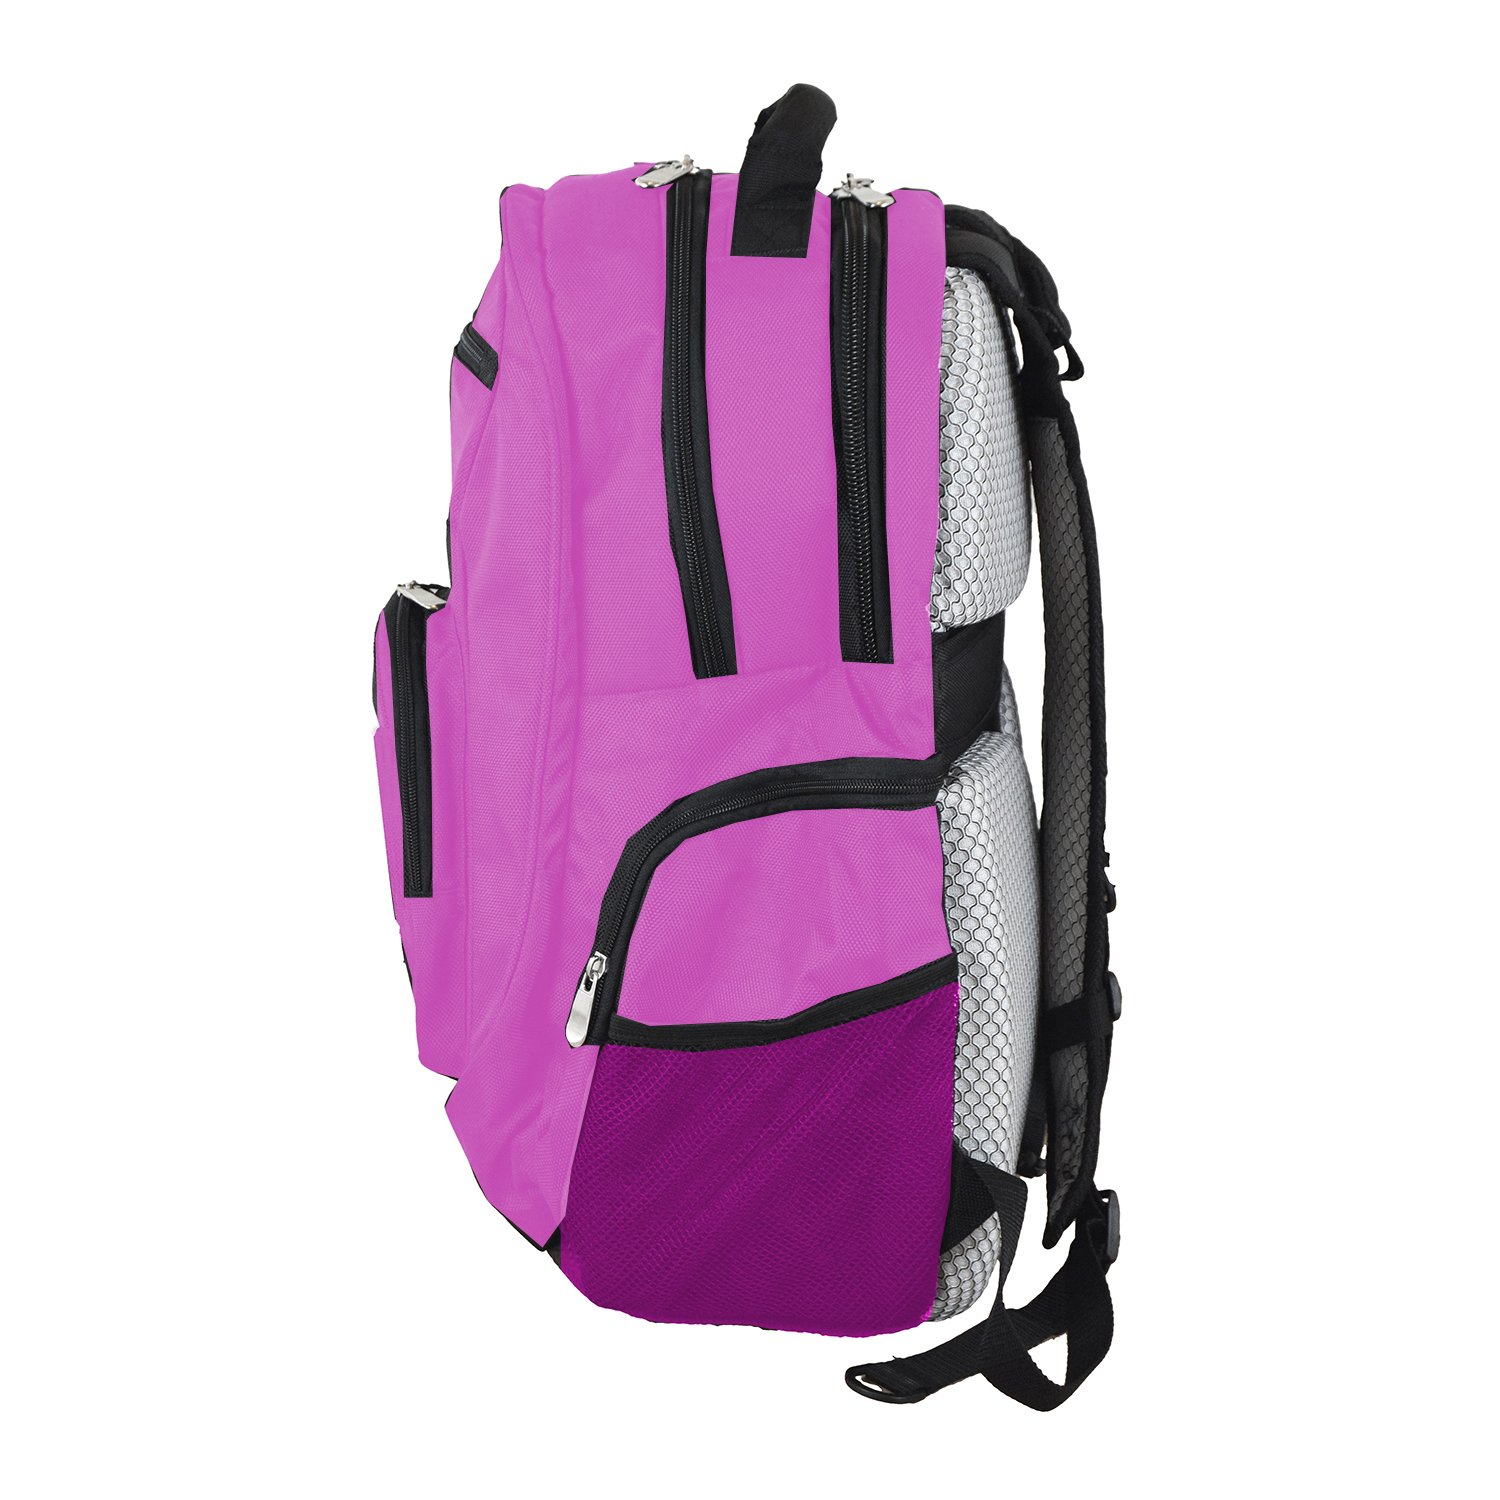 NBA Boston Celtics Voyager Laptop Backpack, 19-inches, Pink by Denco (Image #3)